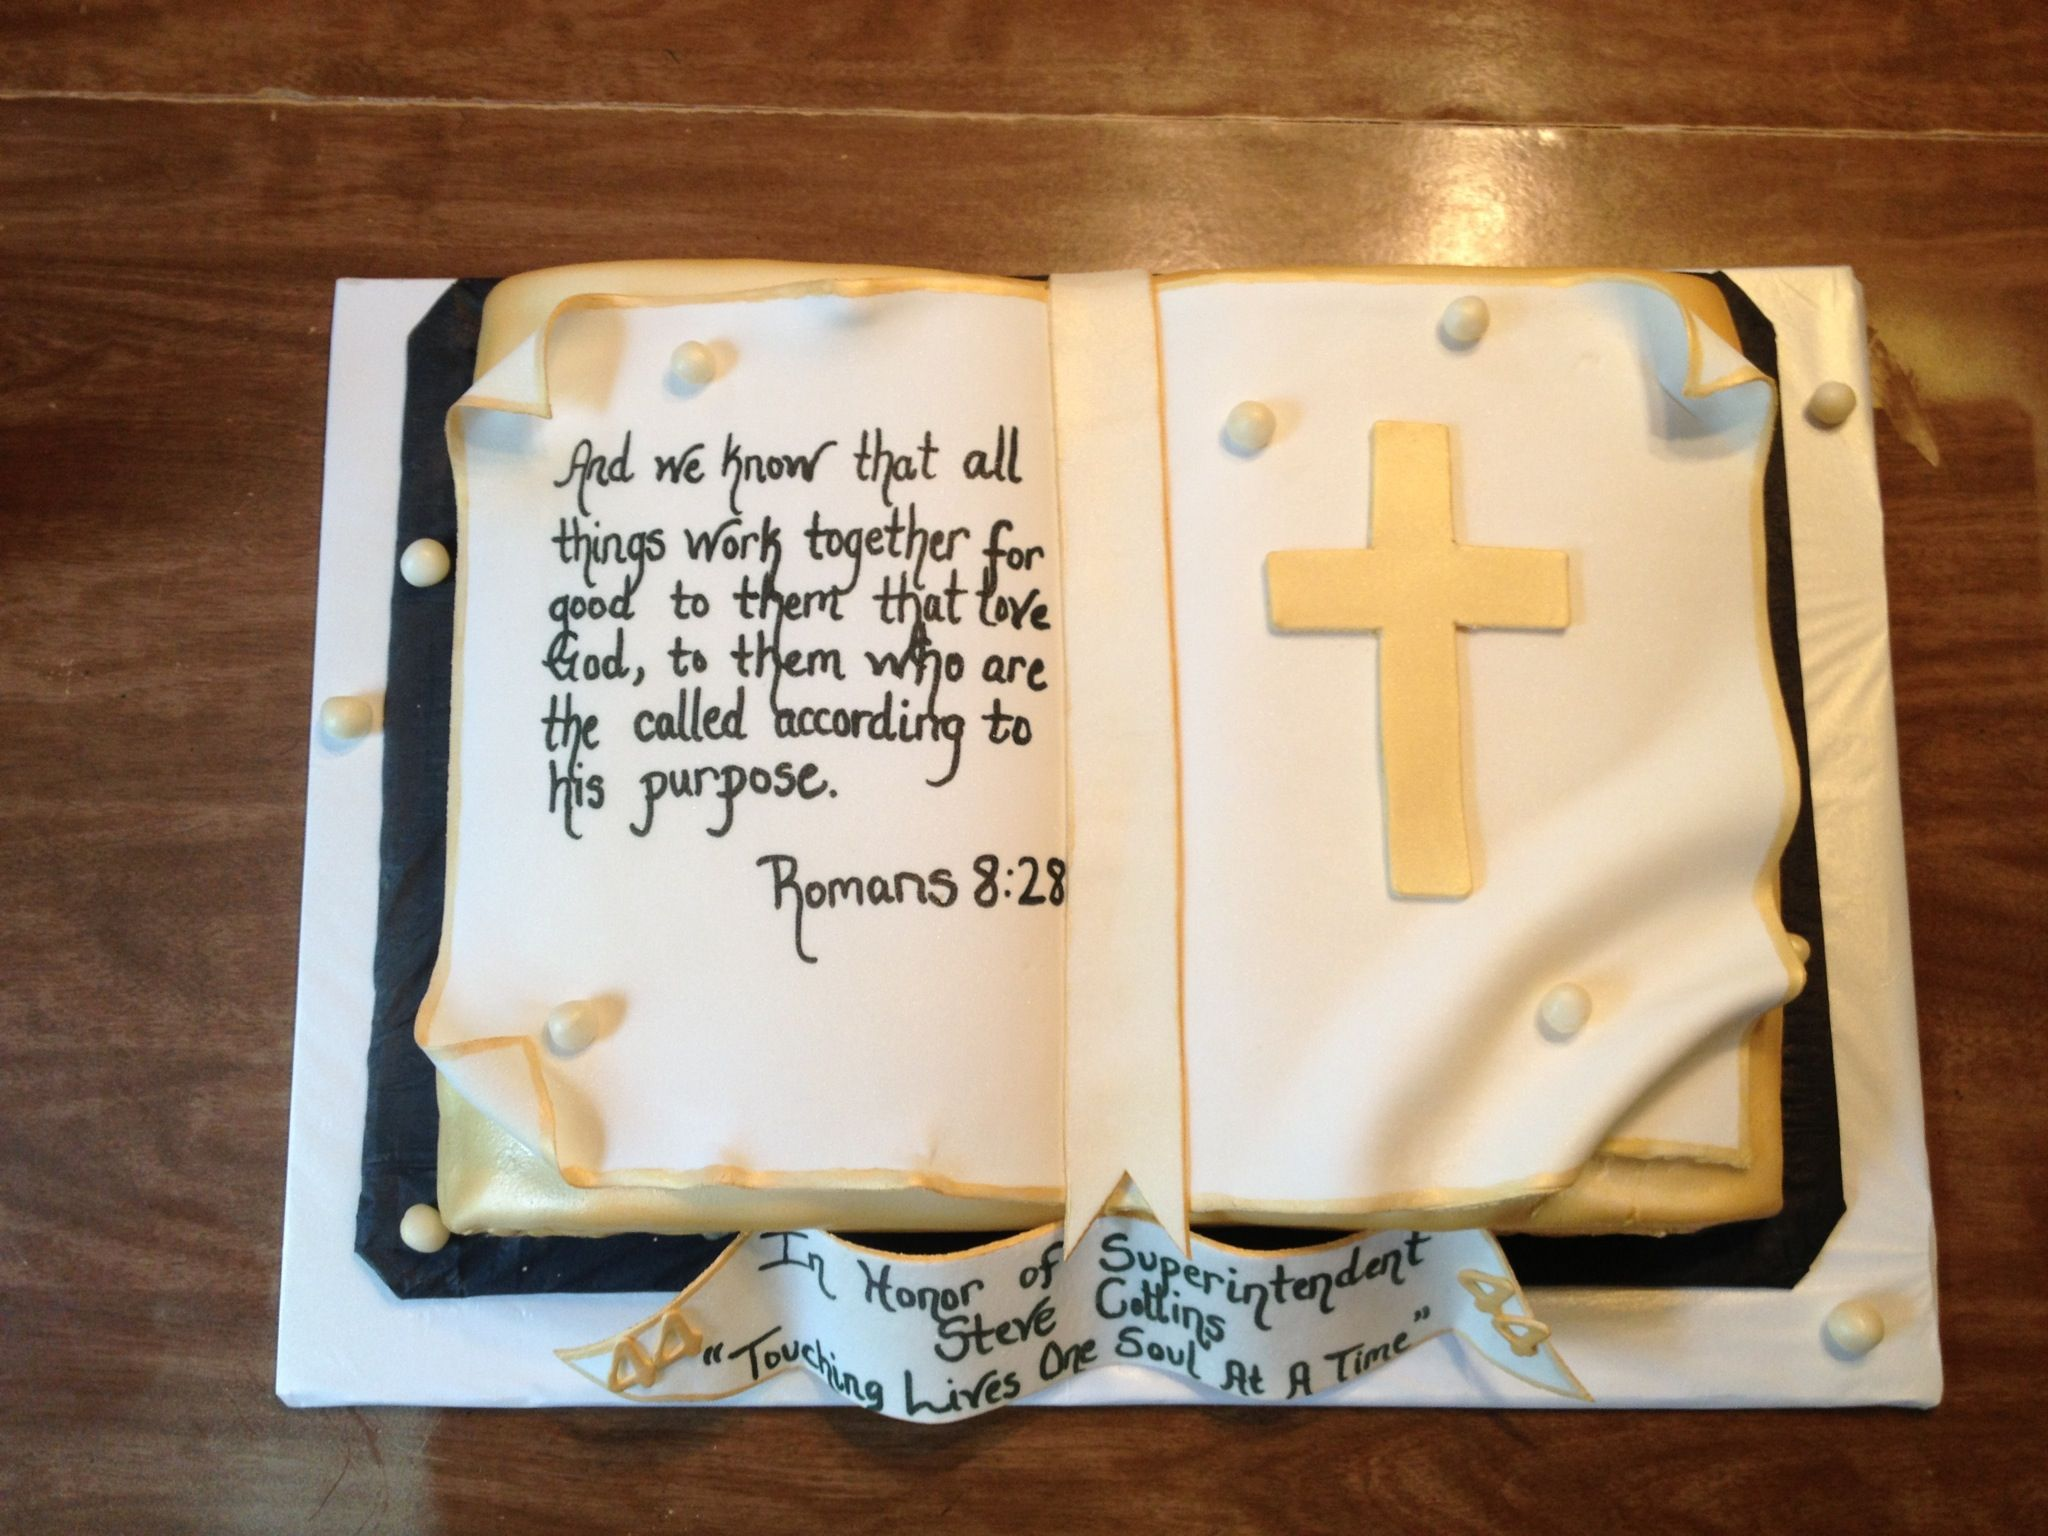 Made for Superintendent Steve Collins for his Pastor Anniversary